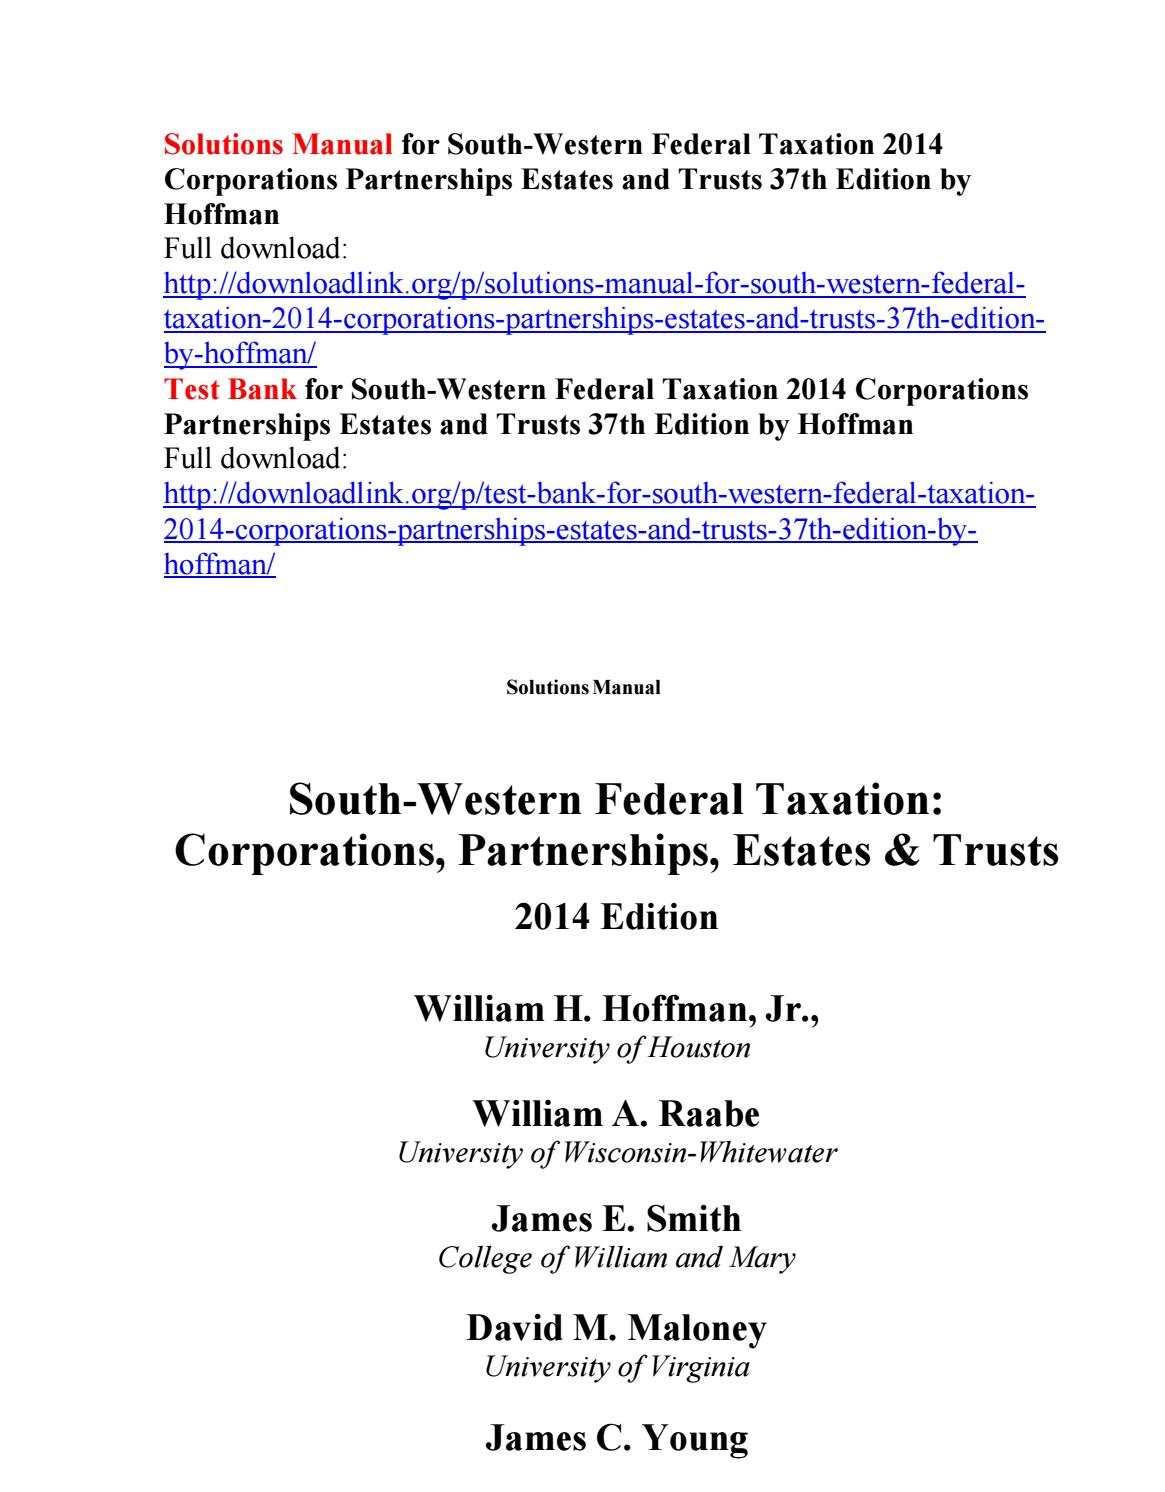 Solutions manual for south western federal taxation 2014 corporations  partnerships estates and trust by Nickelr111 - issuu